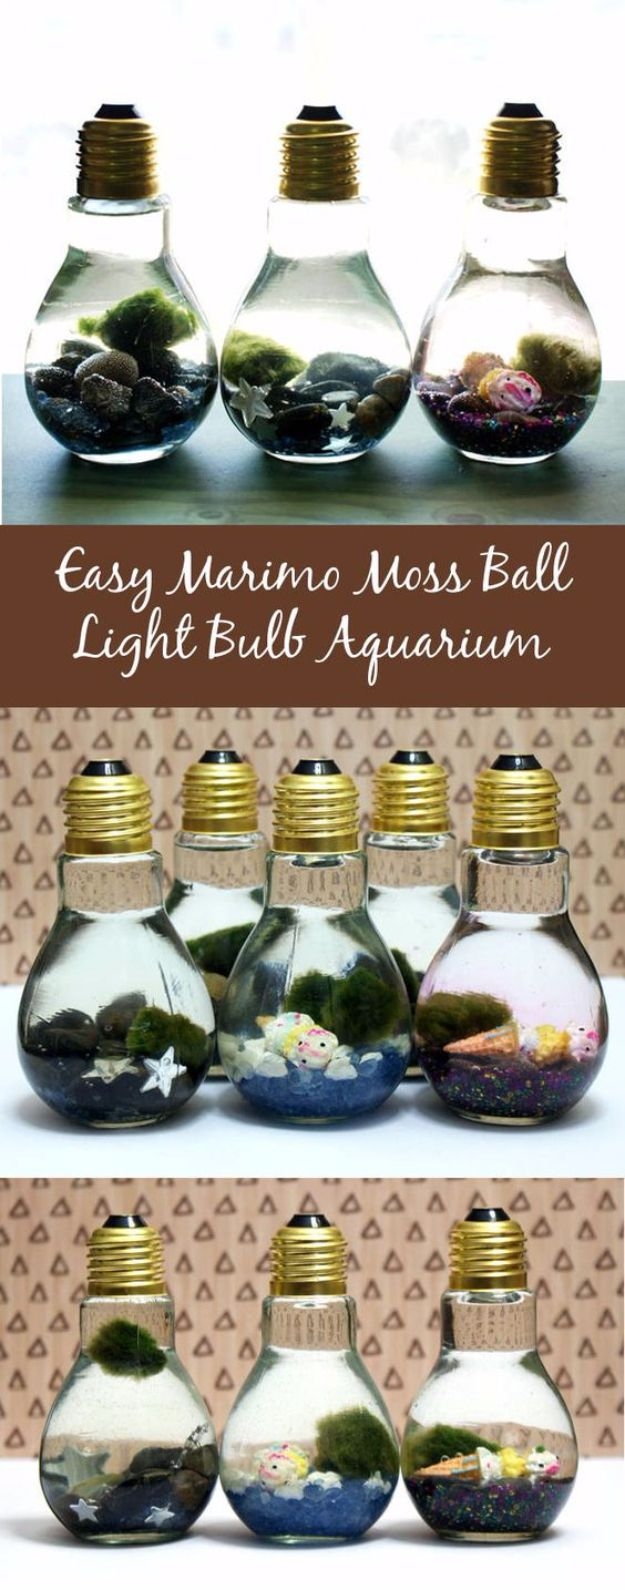 Easy DIY Light Bulb Aquarium -   18 diy projects to sell cheap ideas